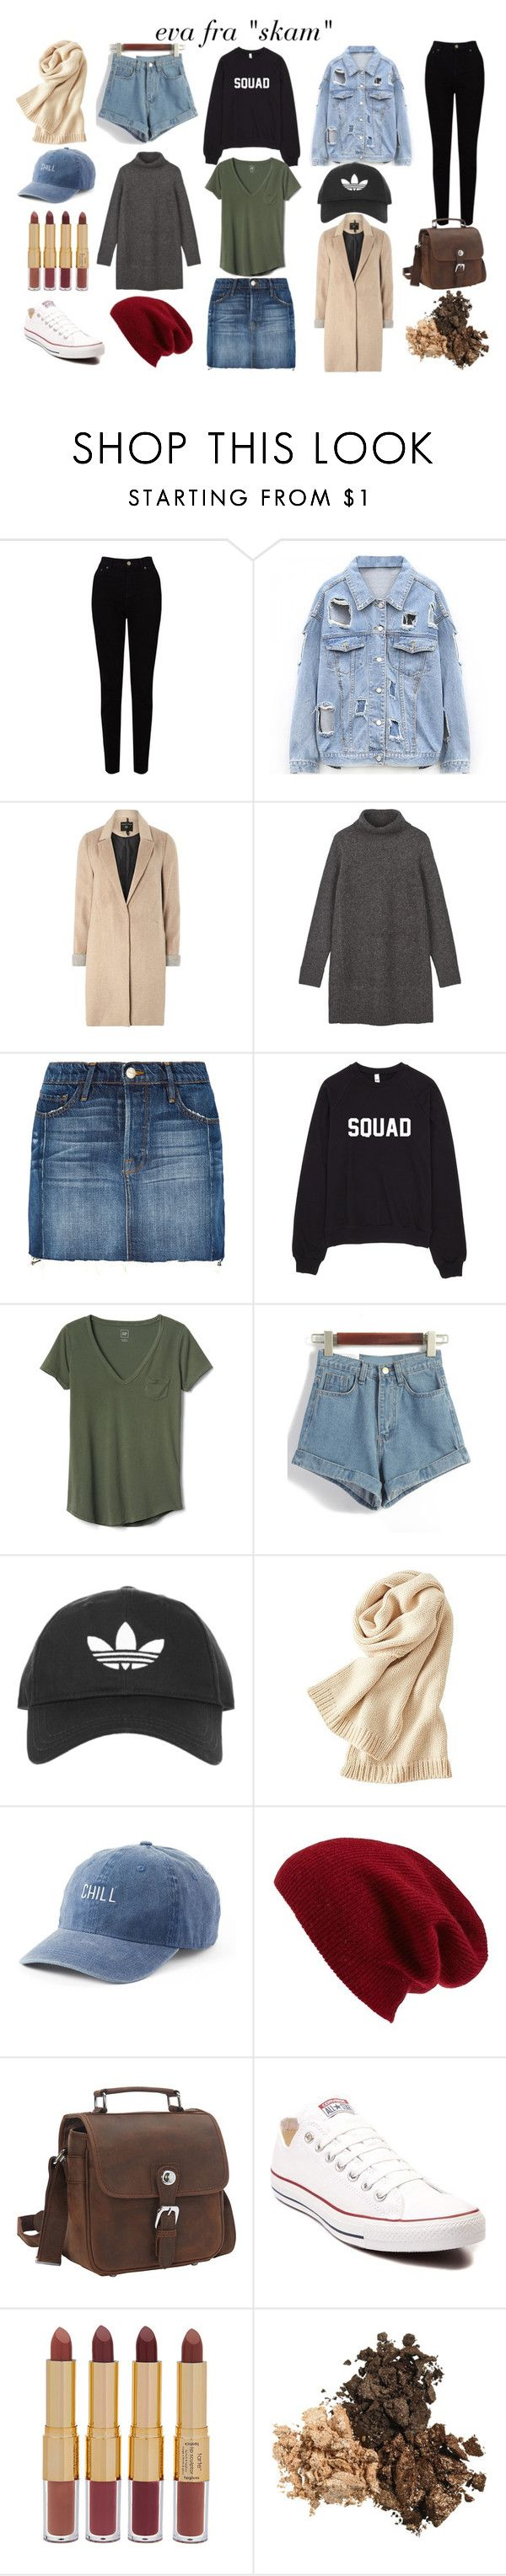 """eva from ""skam"""" by nanna-grubert-1 on Polyvore featuring EAST, mel, Frame, Gap, Topshop, Uniqlo, SO, Halogen, Vagabond Traveler and Converse"